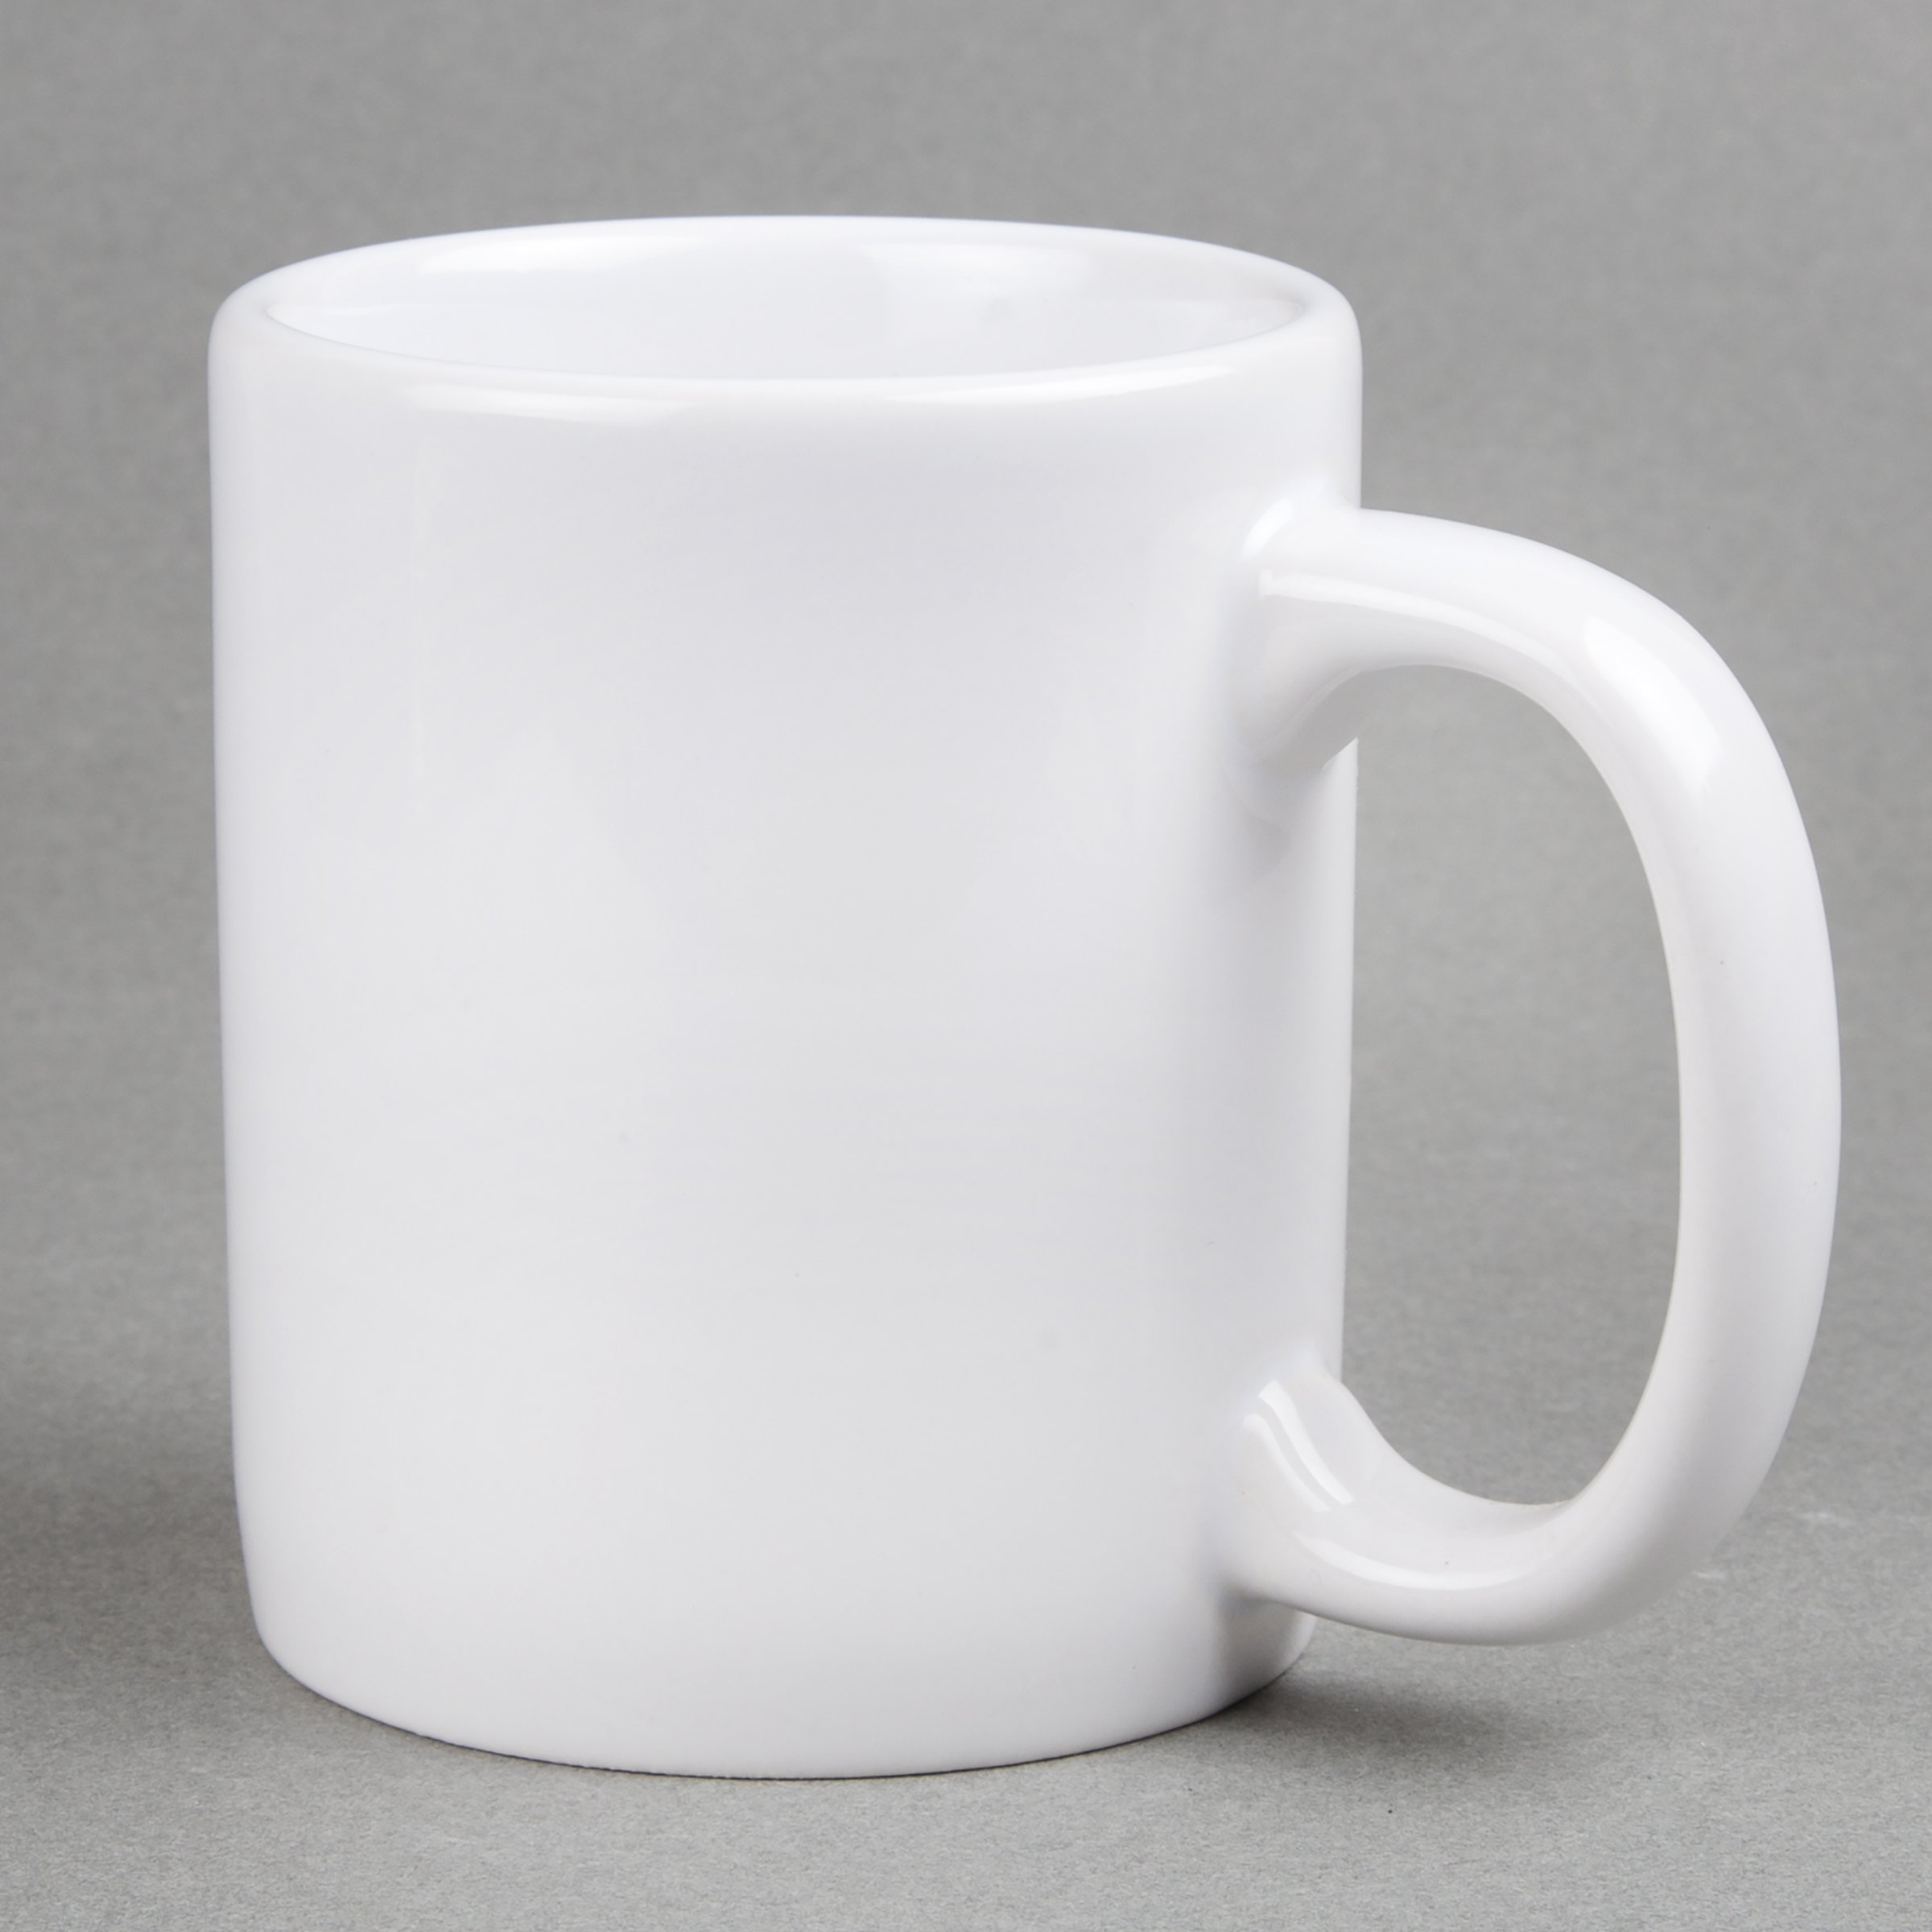 Creative Home 85355 Set of 6 Piece, 12 Oz Ceramic Coffee Mug Tea Cup, 3-1/4'' D x 4'' H, White by Creative Home (Image #3)